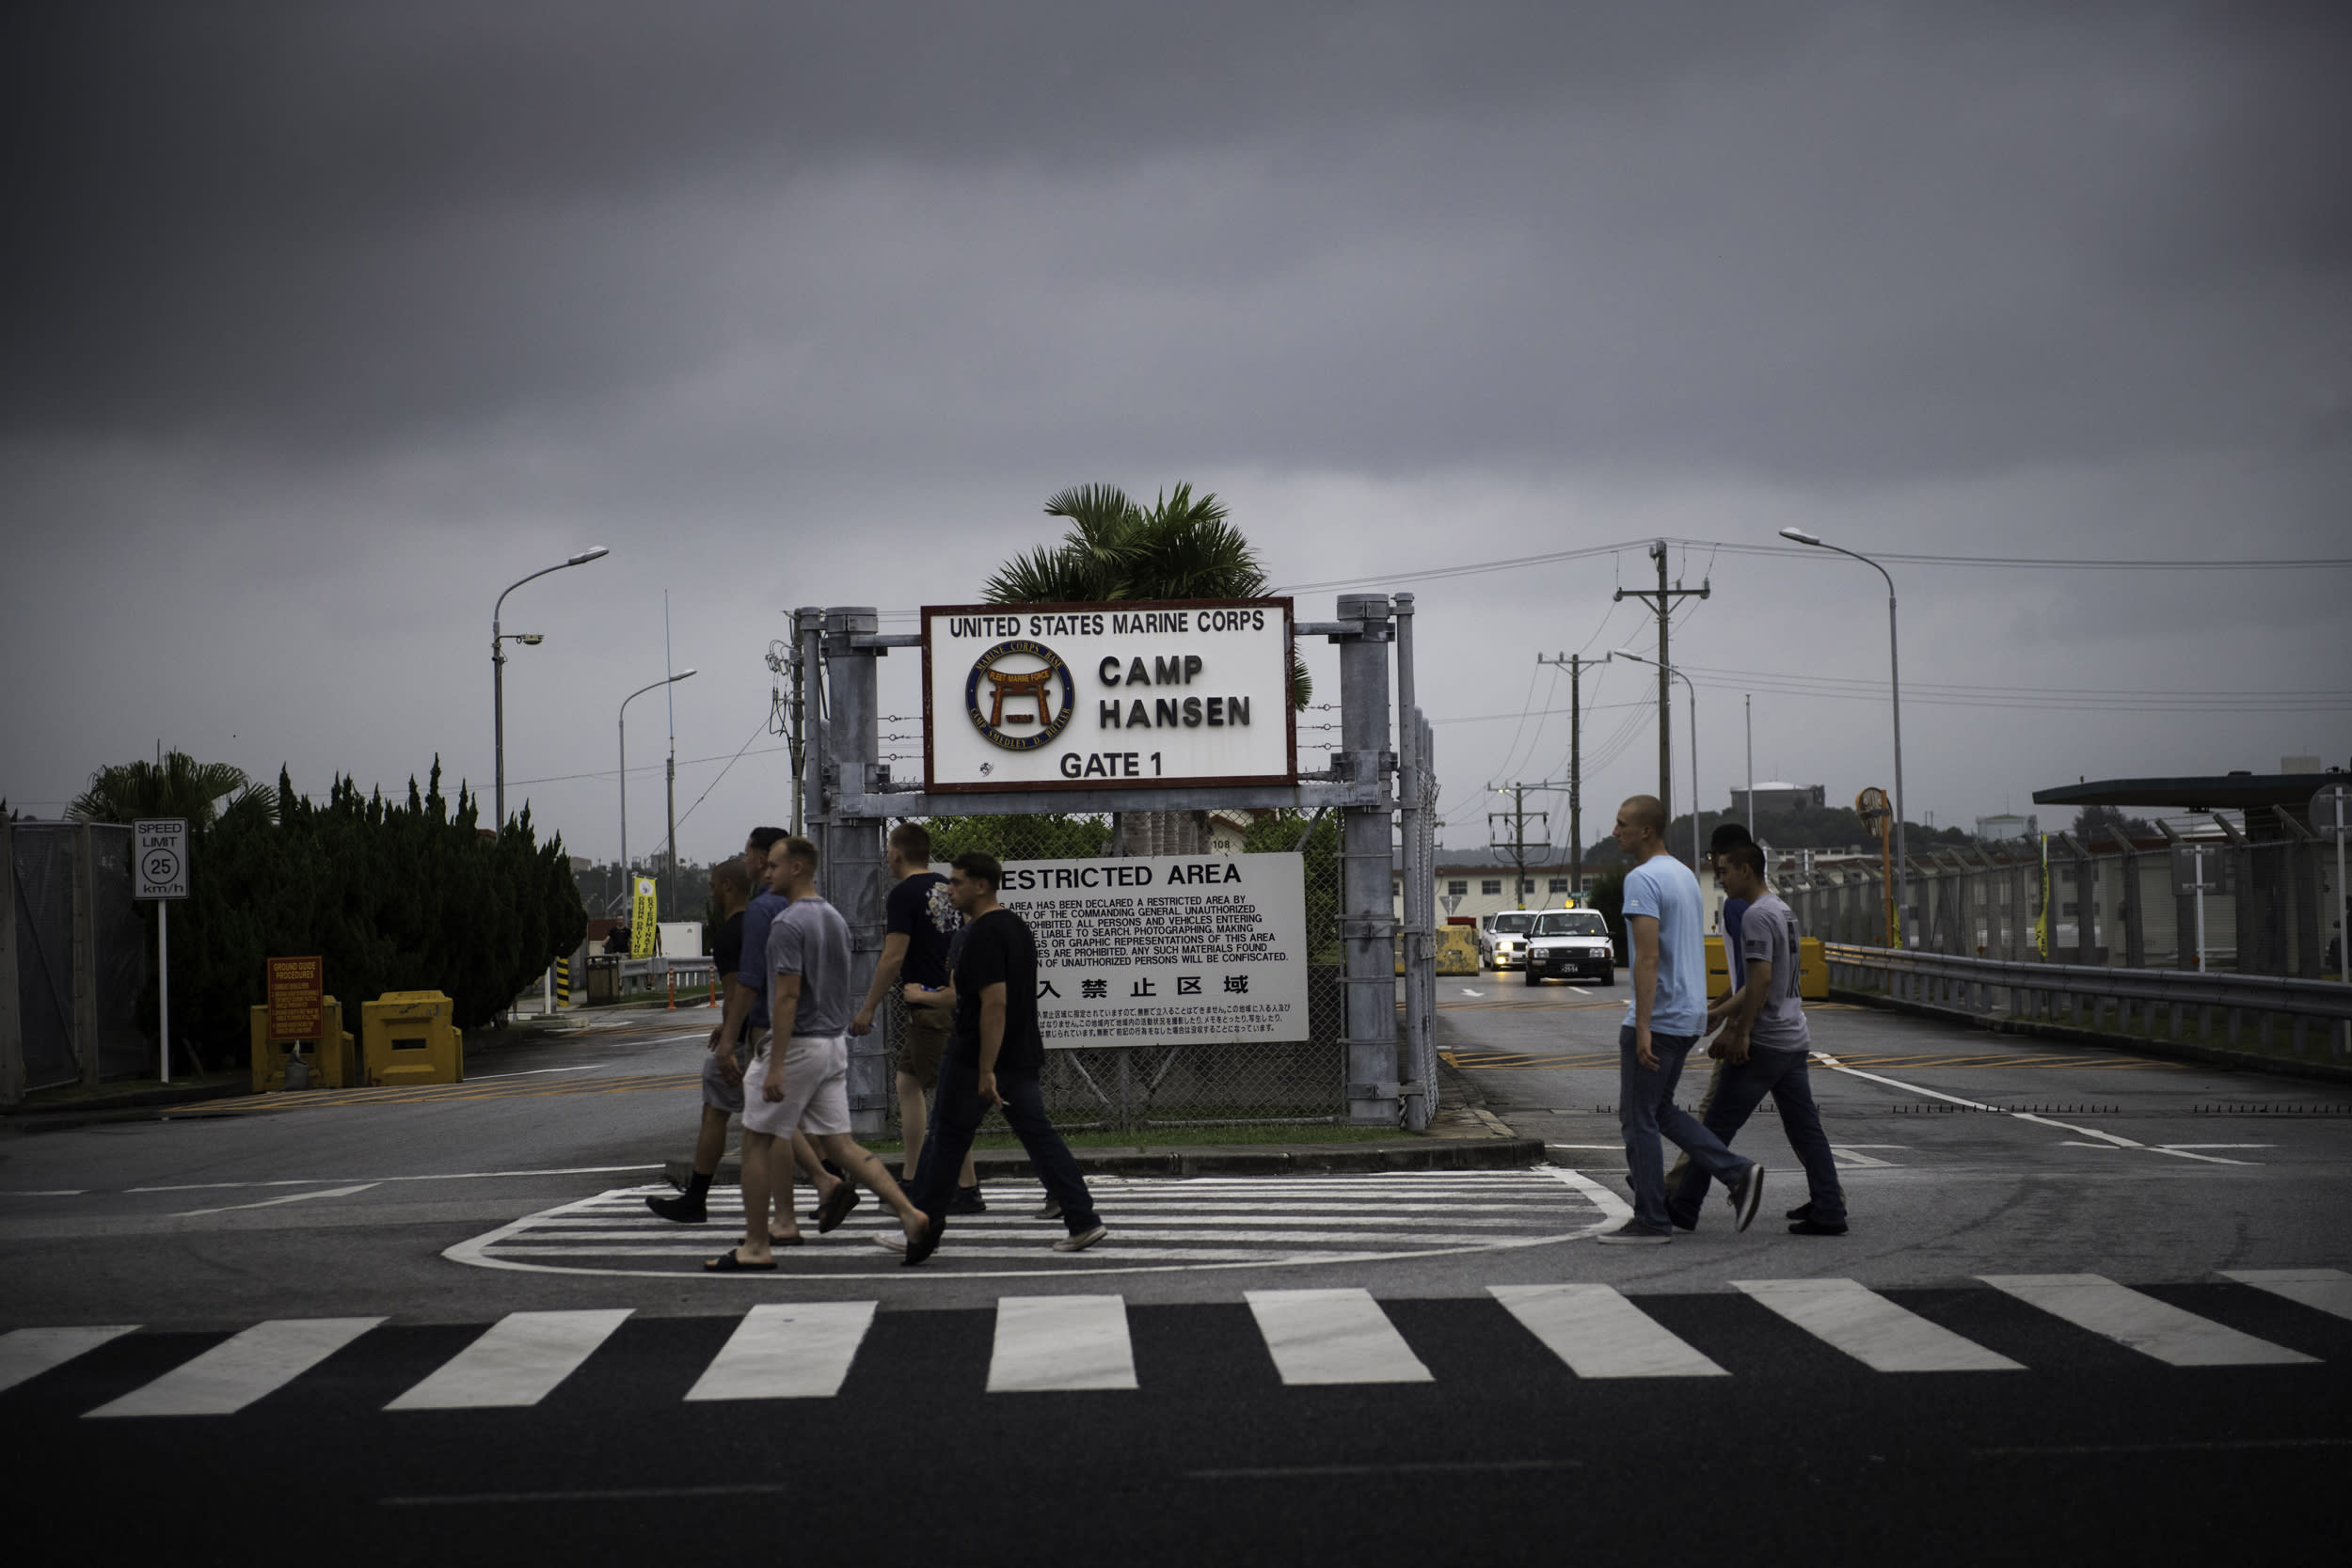 Japanese governor demands U.S. military meeting after coronavirus outbreak